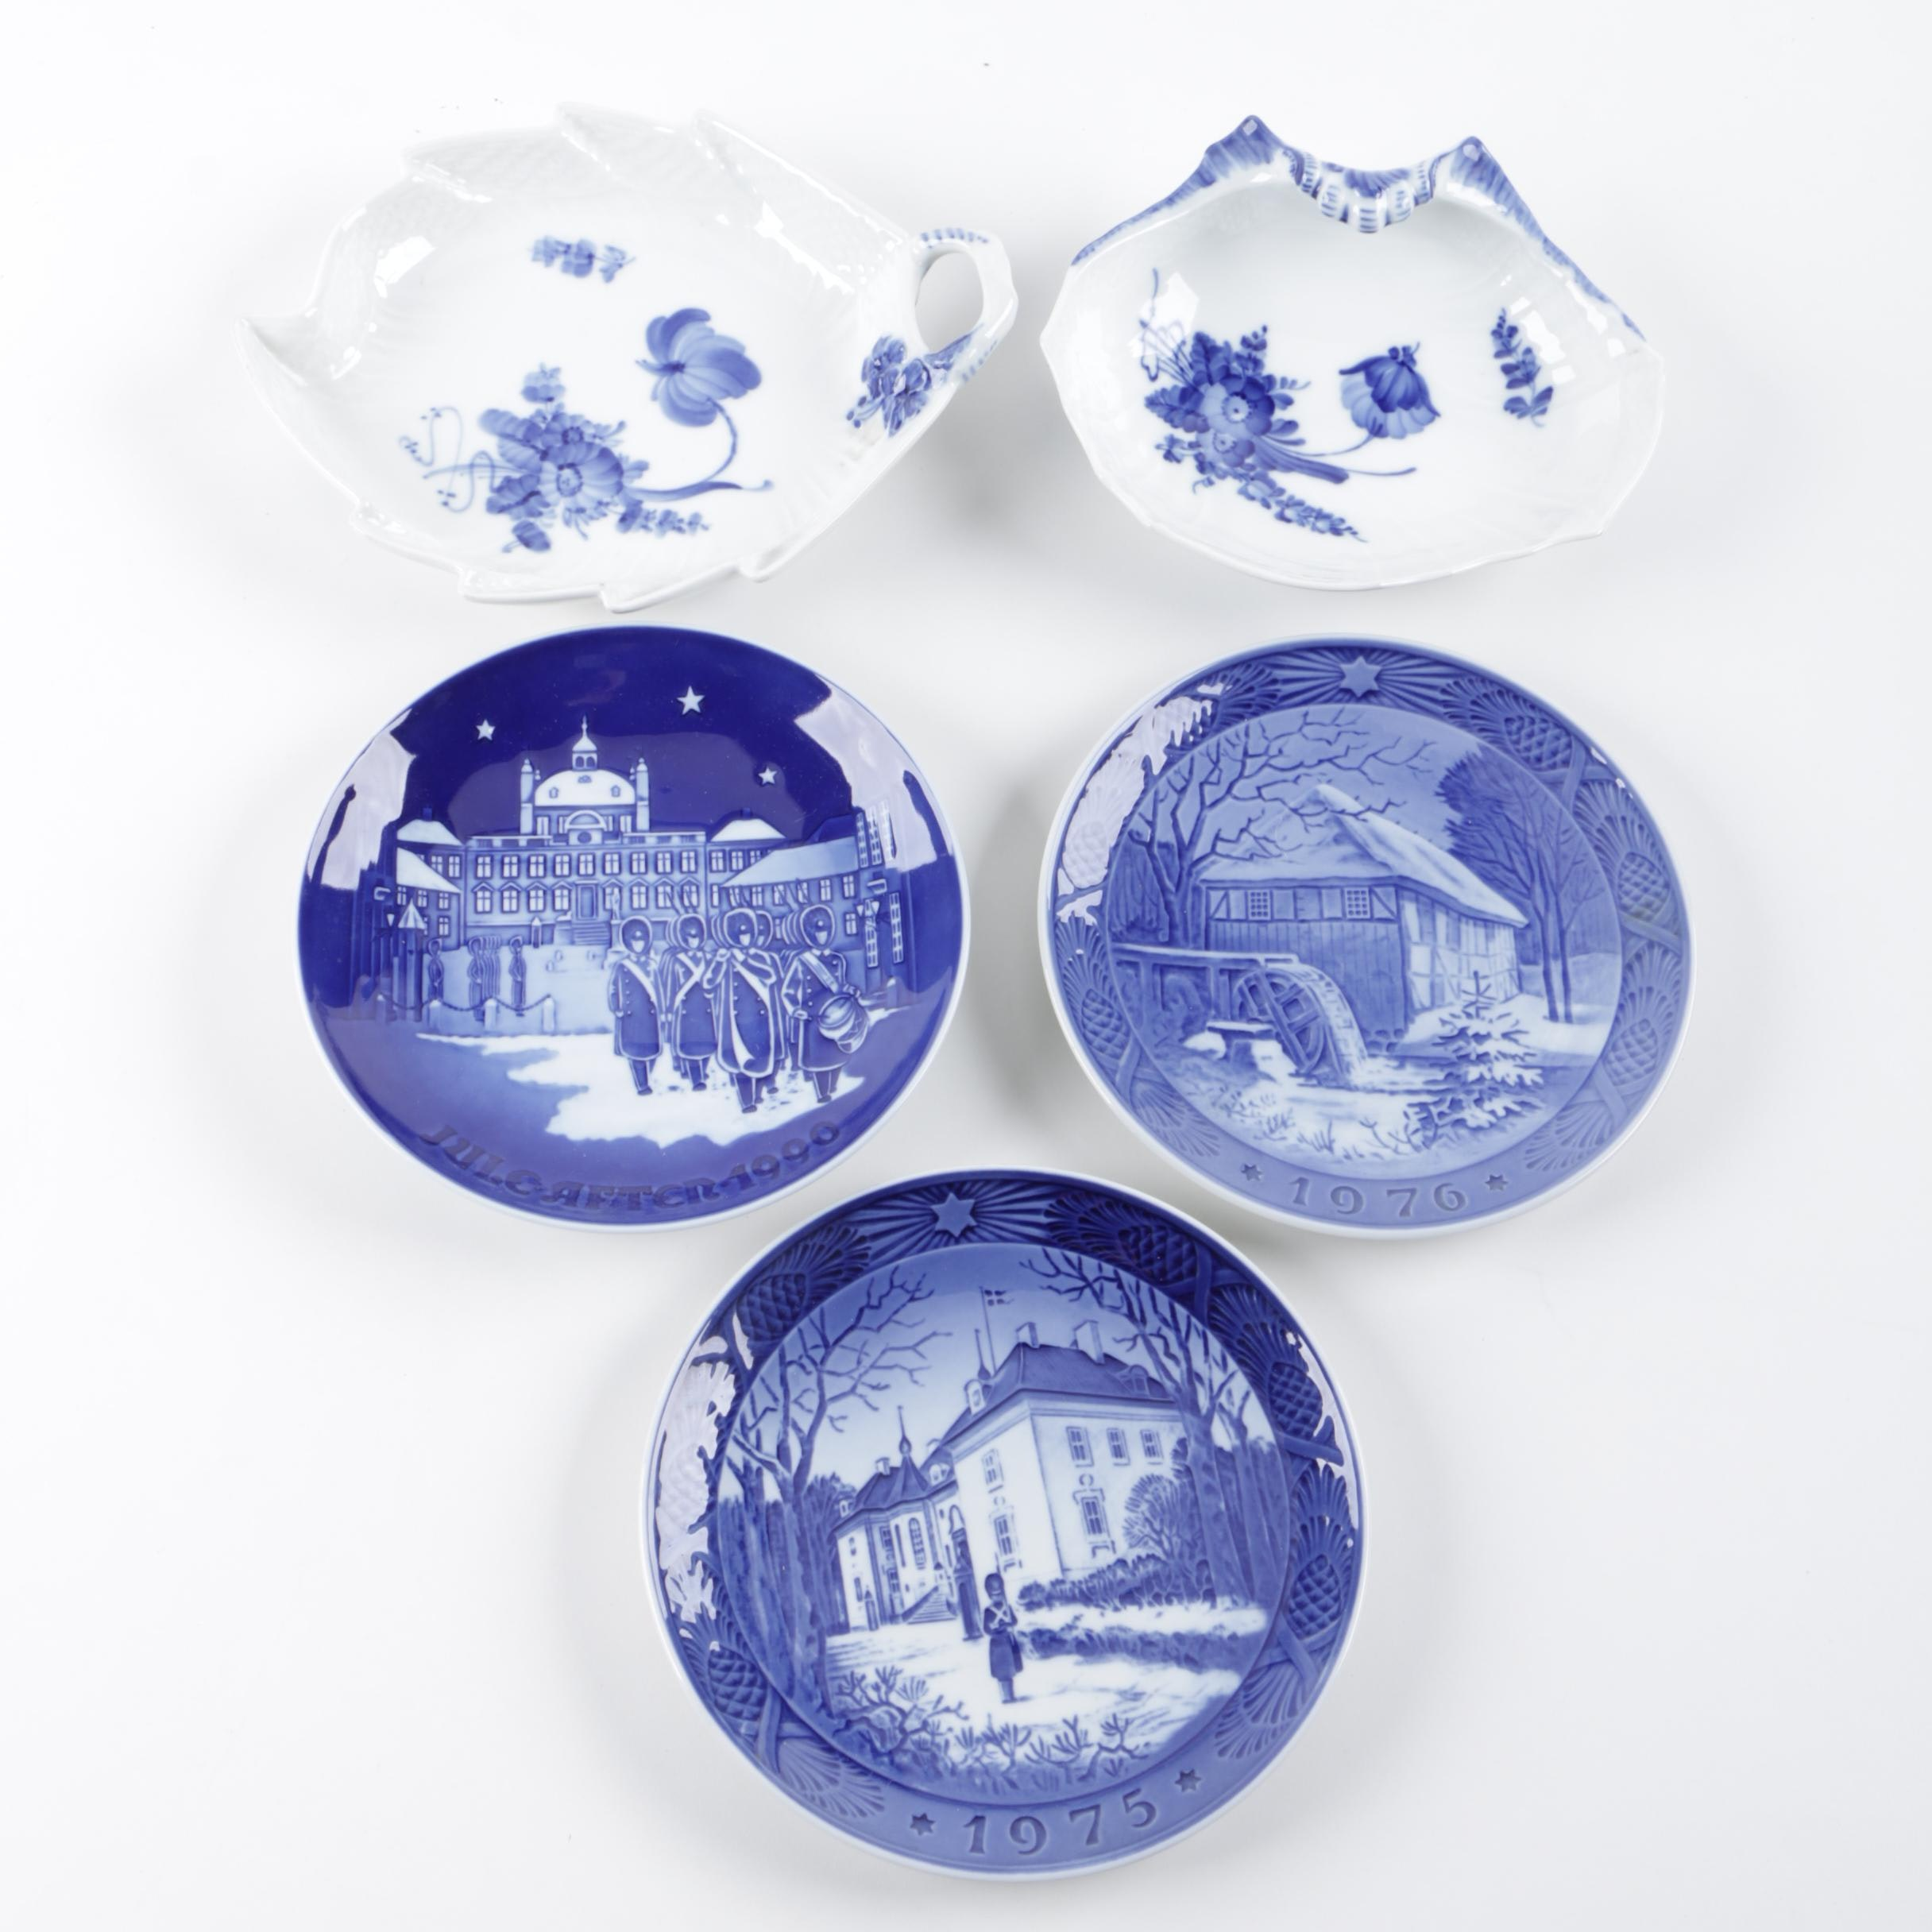 Royal Copenhagen and Bing and Grøndahl Commemorative Plates and Dishes